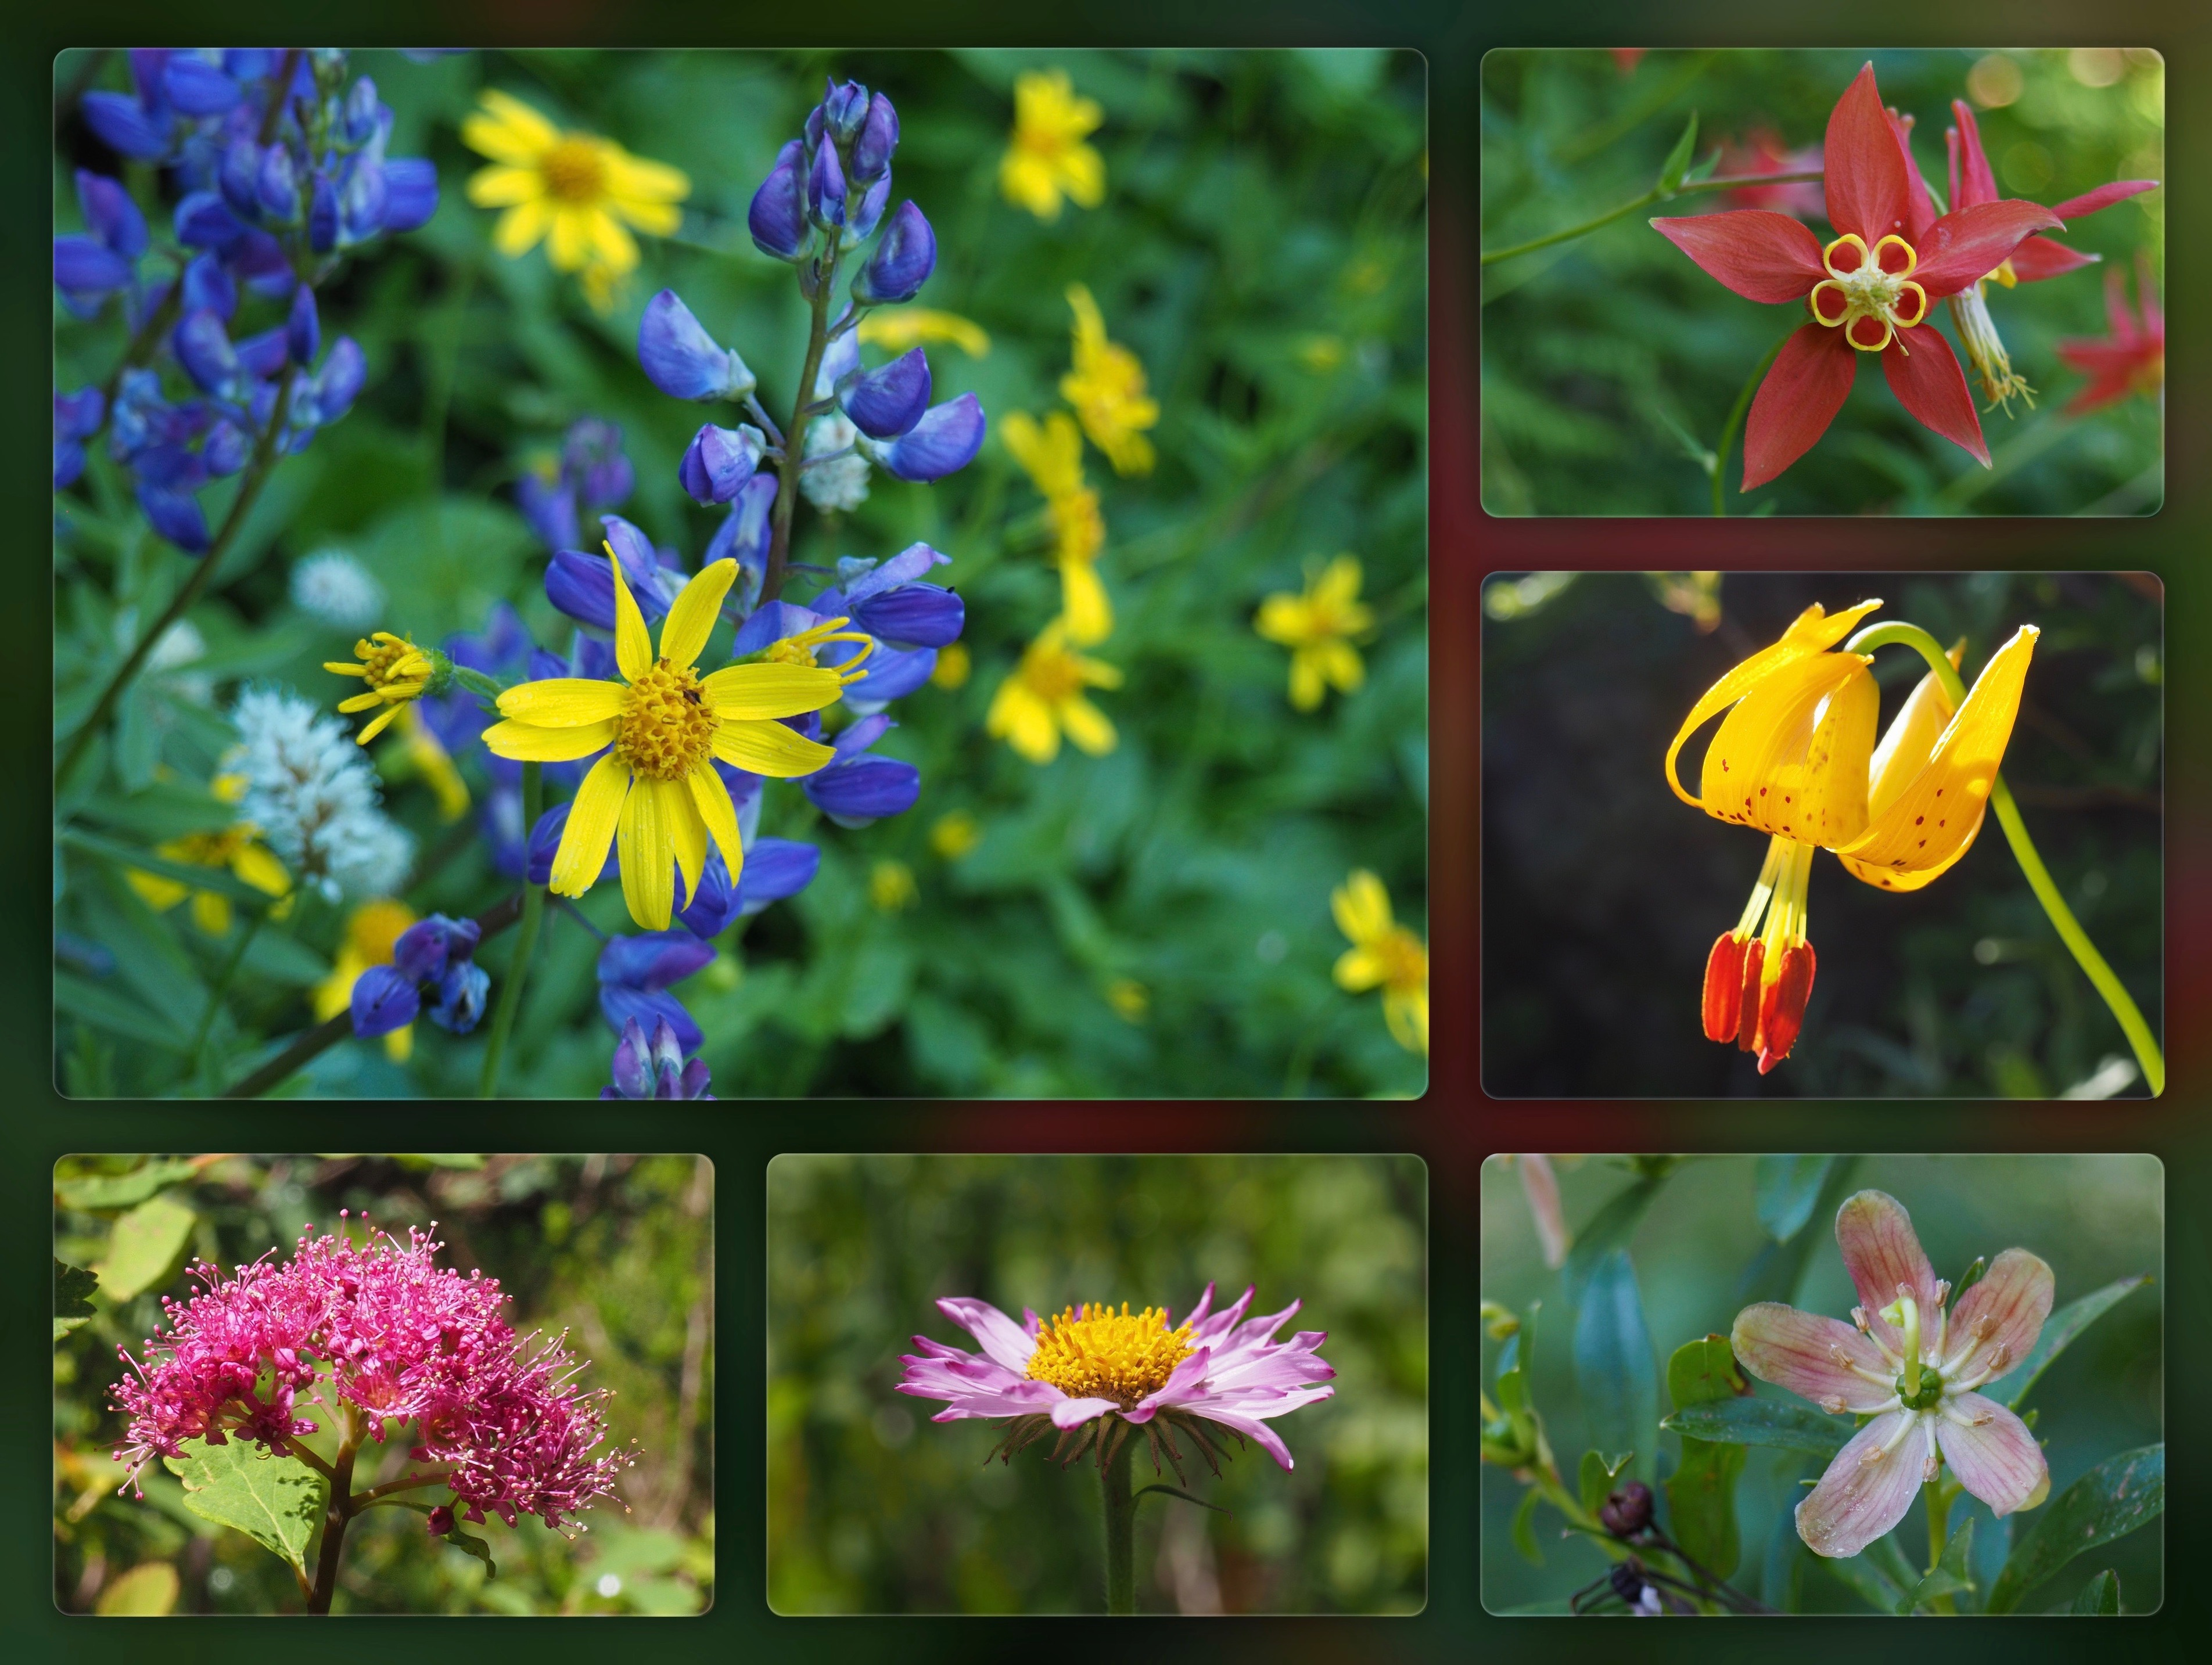 Throughout the boglands and along the woodland slopes, an array of summer wildflowers stipples the wayside. Clockwise from the top left, golden arnicas (Arnica sp.) and cobalt lupines (Lupinus sp.) join in complementary contrast; a western, or, Sitka columbine (Aquilegia formosa) reveals a honeycombed pinwheel; a Columbia lily (Lilium columbianum) nods into the brilliant sunshine; a copperbush (Elliottia pyroliflora) rears its elephantine pistil; a subalpine fleabane (Erigeron glacialis) unfurls its petals sunward; and a subalpine spirea (Spiraea splendens) lofts a sweetly scented nosegay. Walt Bailey Trail, July 24, 2016.